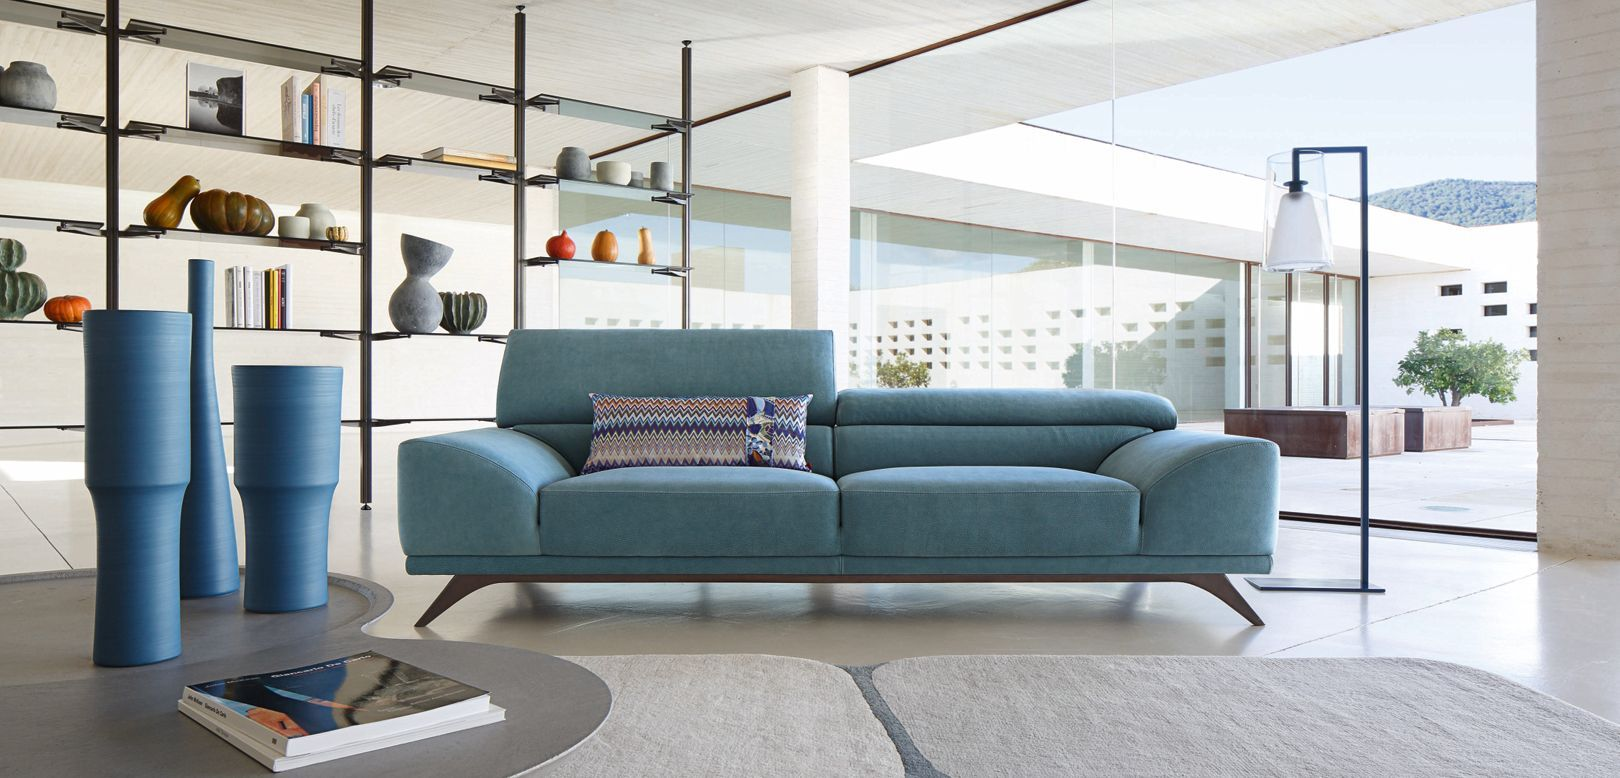 This sofa looks amazing roche bobois huge three seats - Canape cuir roche bobois ...